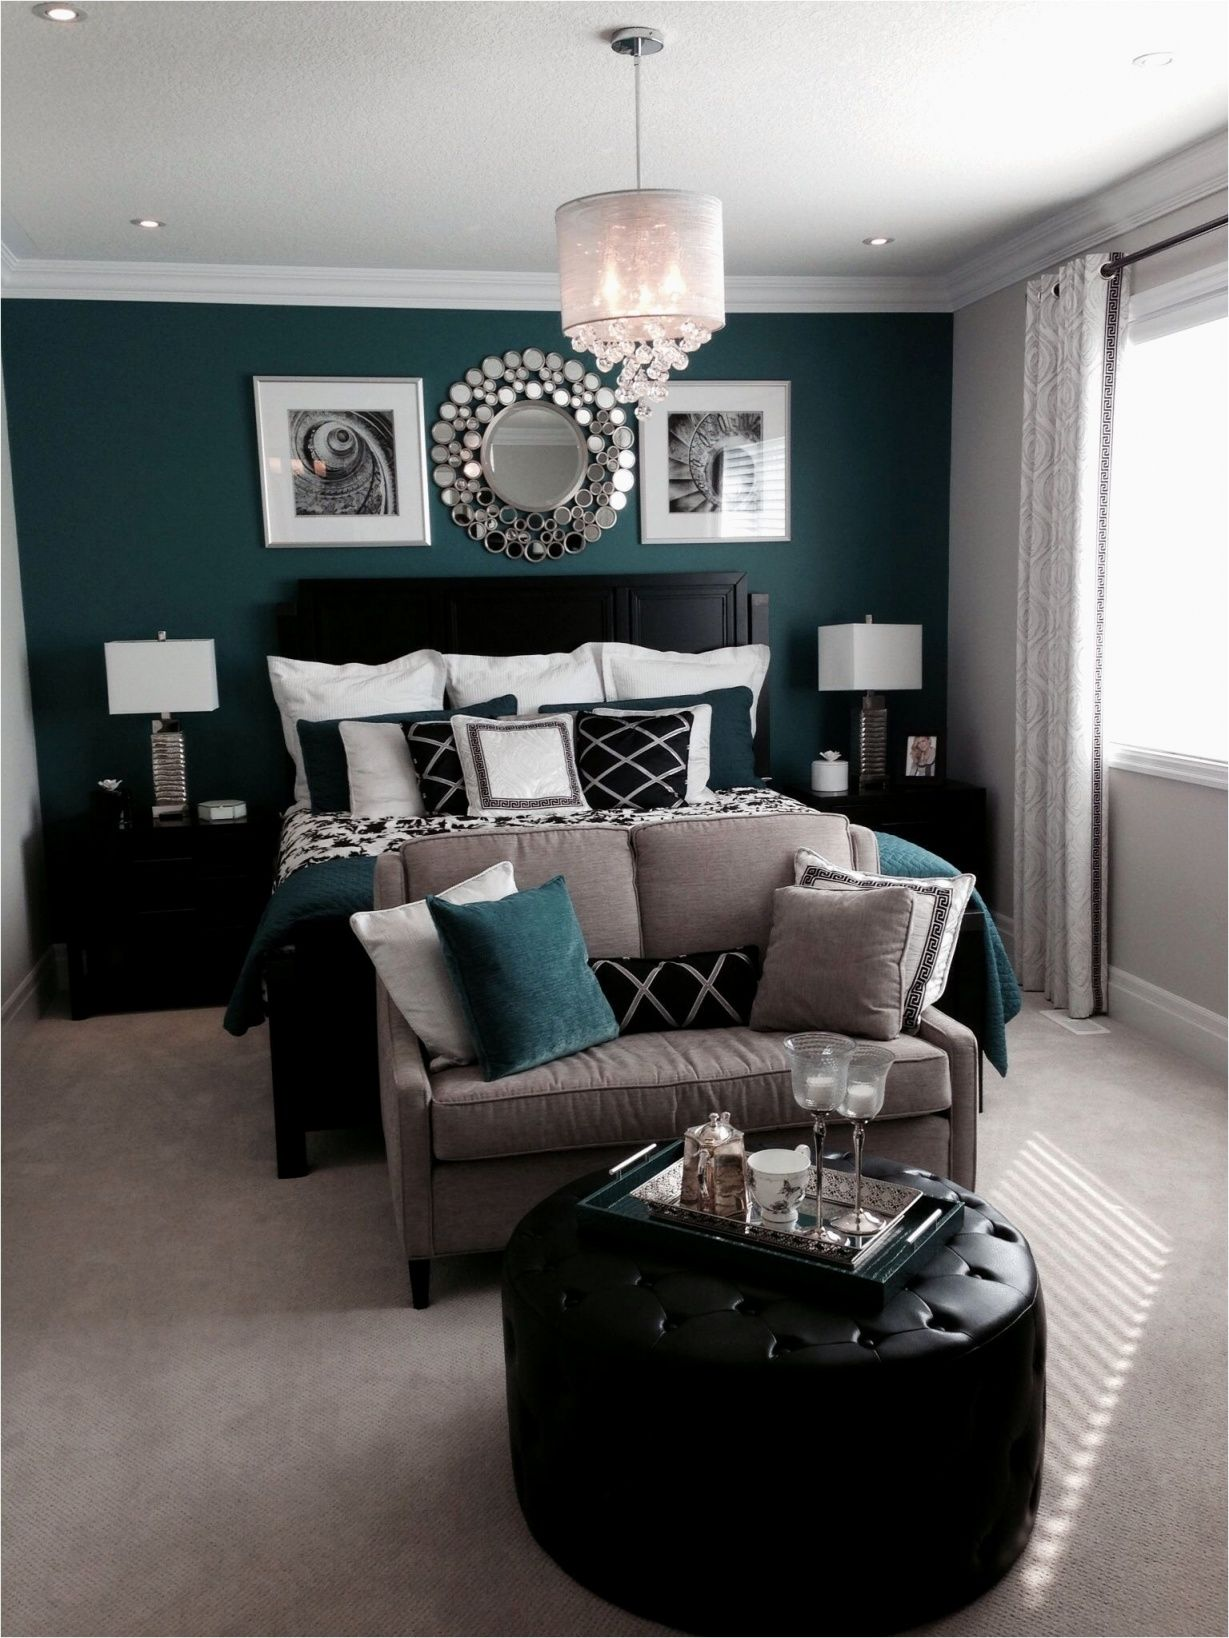 Everything You Need To Know About Turquoise Living Room Decor Grey In 2020 Living Room Grey Turquoise Living Room Decor Black And Grey Bedroom #turquoise #living #room #decor #ideas